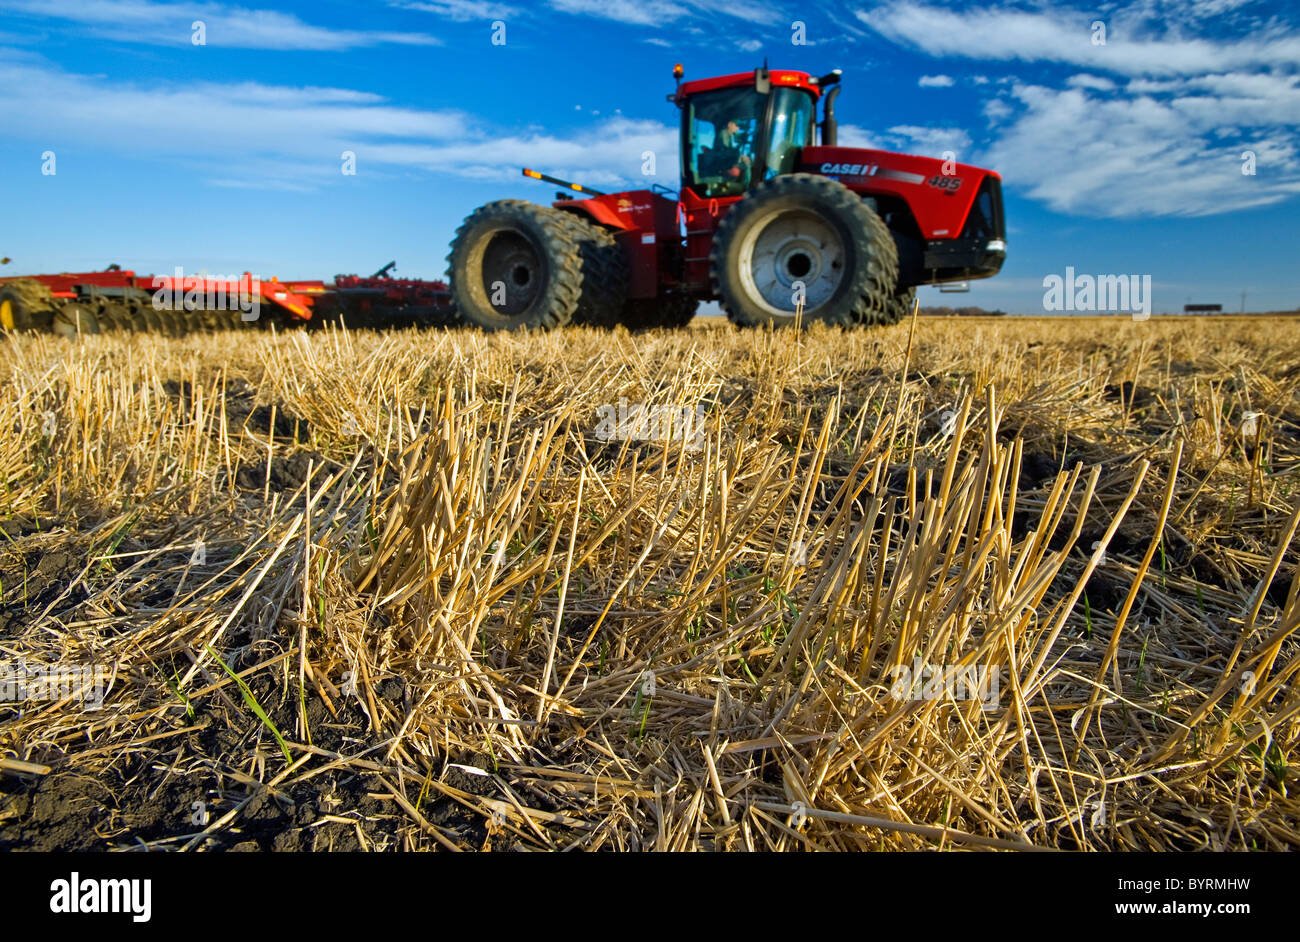 Close-up of wheat stubble with an out of focus tractor pulling cultivating equipment in the background / Manitoba, - Stock Image